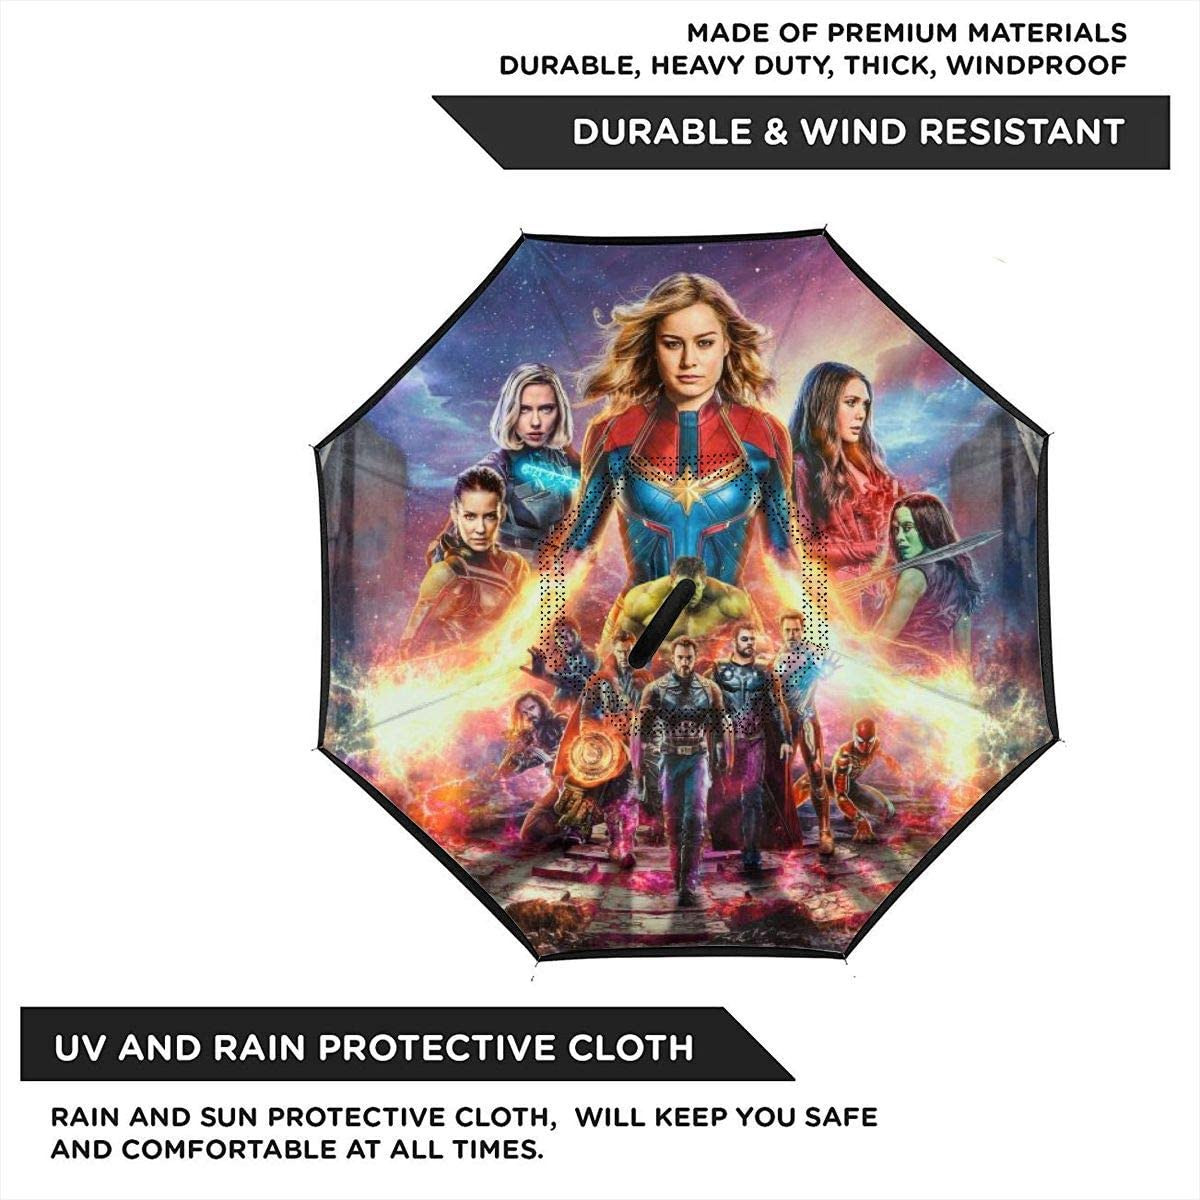 The Avengers Car Reverse Umbrella Windproof And Rainproof Double Folding Inverted Umbrella With C-Shaped Handle UV Protection Inverted Folding Umbrellas